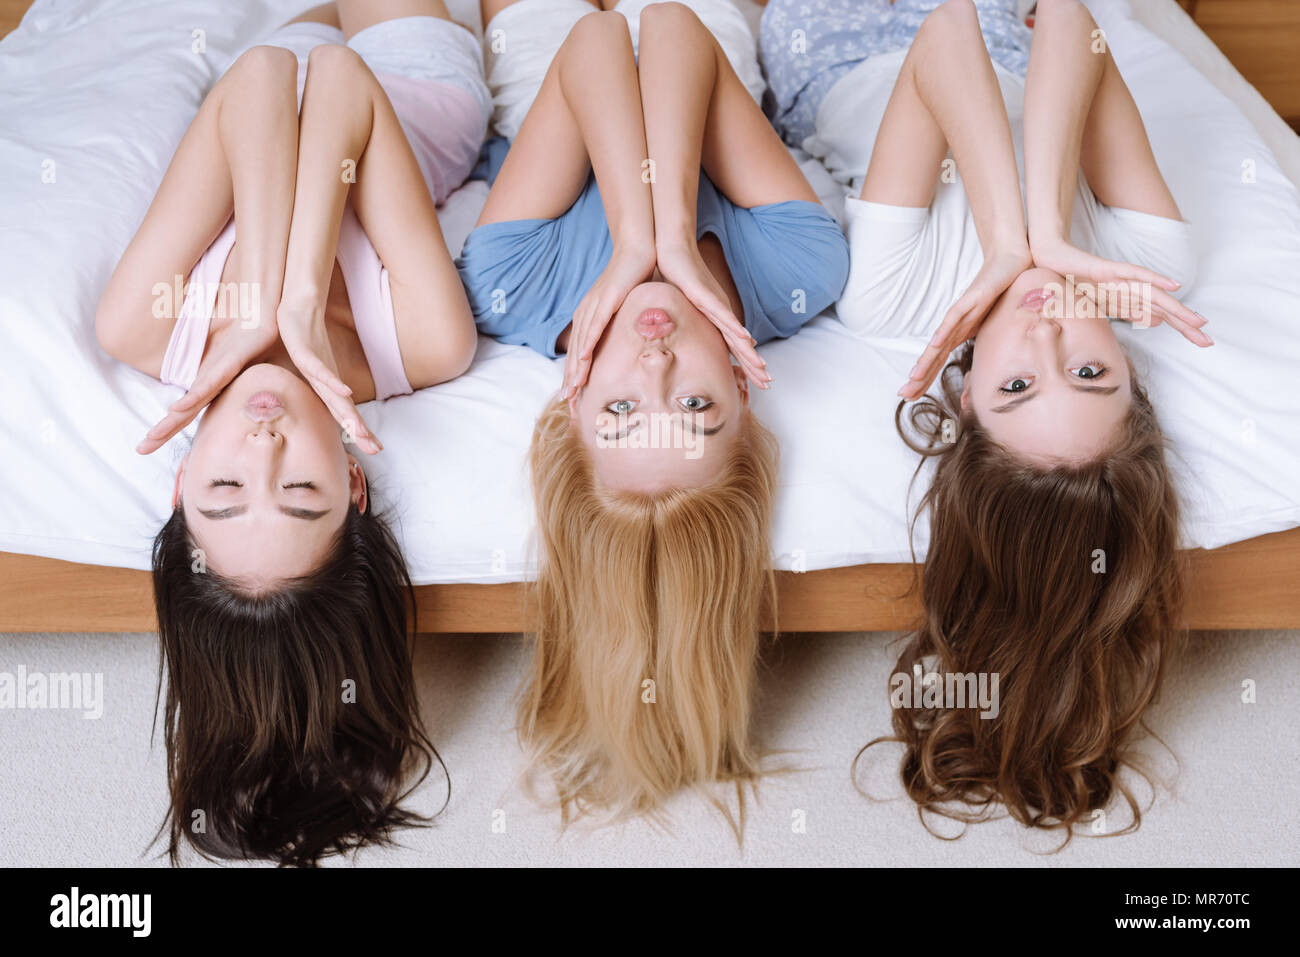 overhead view of multicultural friends grimacing and hanging down from bed - Stock Image